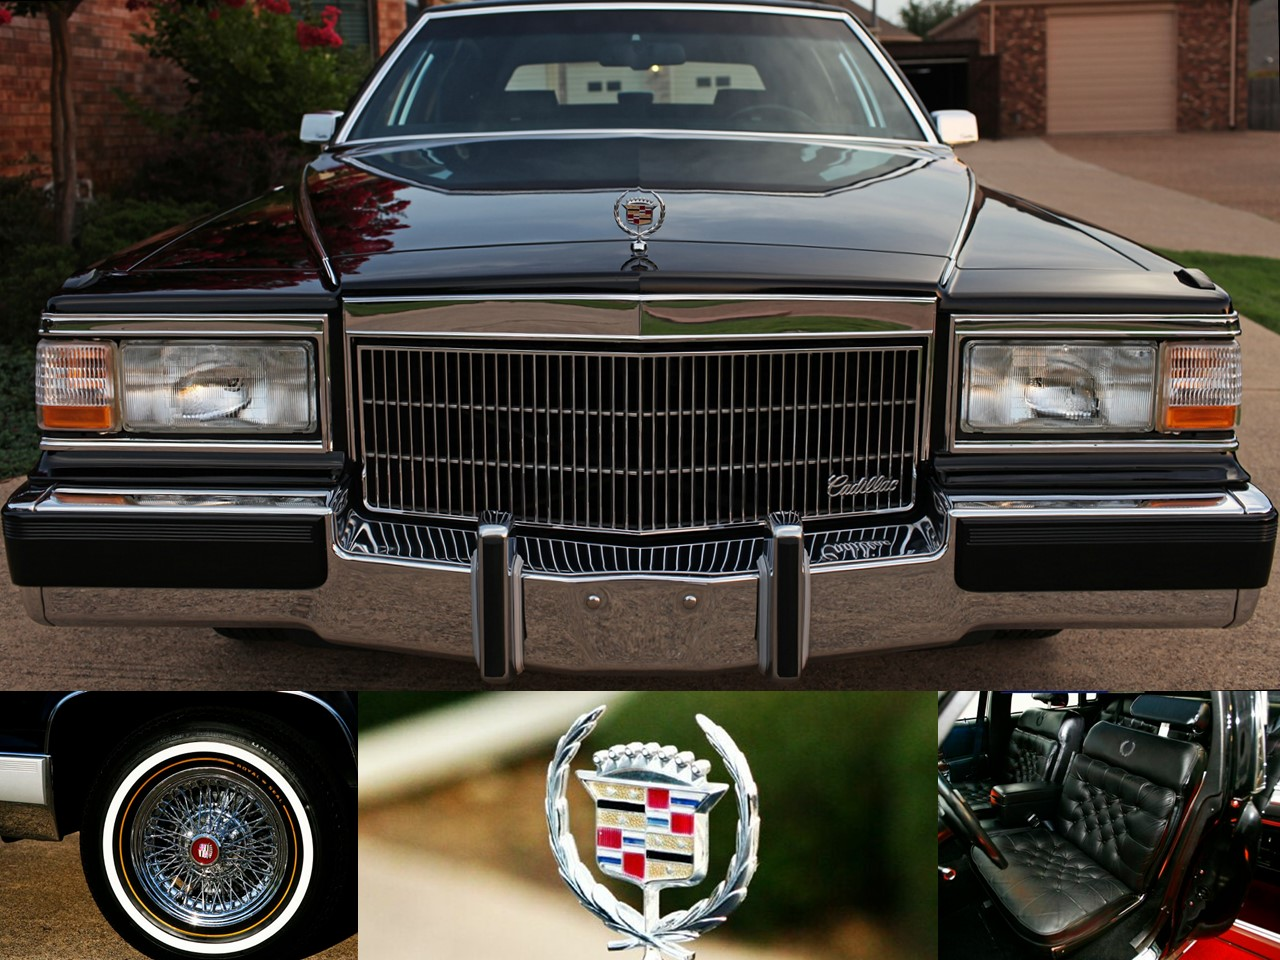 91 cadillac brougham fuse box electrical wiring diagrams 93 cadillac fleetwood brougham fuse box 91 cadillac brougham online schematics diagram 91 cadillac rims 91 cadillac brougham fuse box